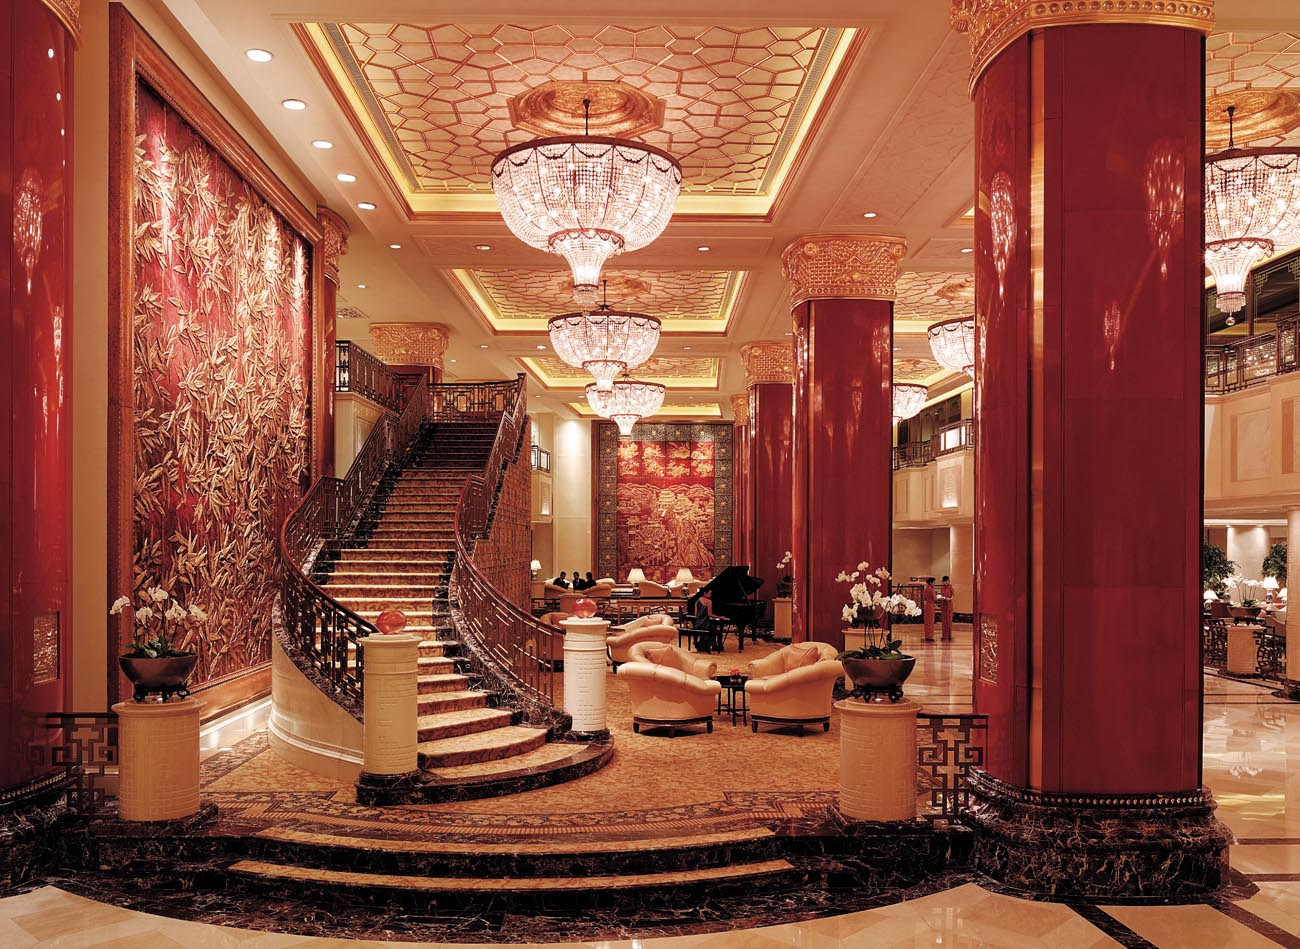 The majestic lobby of the Shangri-La China World Hotel in Beijing; photo: courtesy of Shangri-La